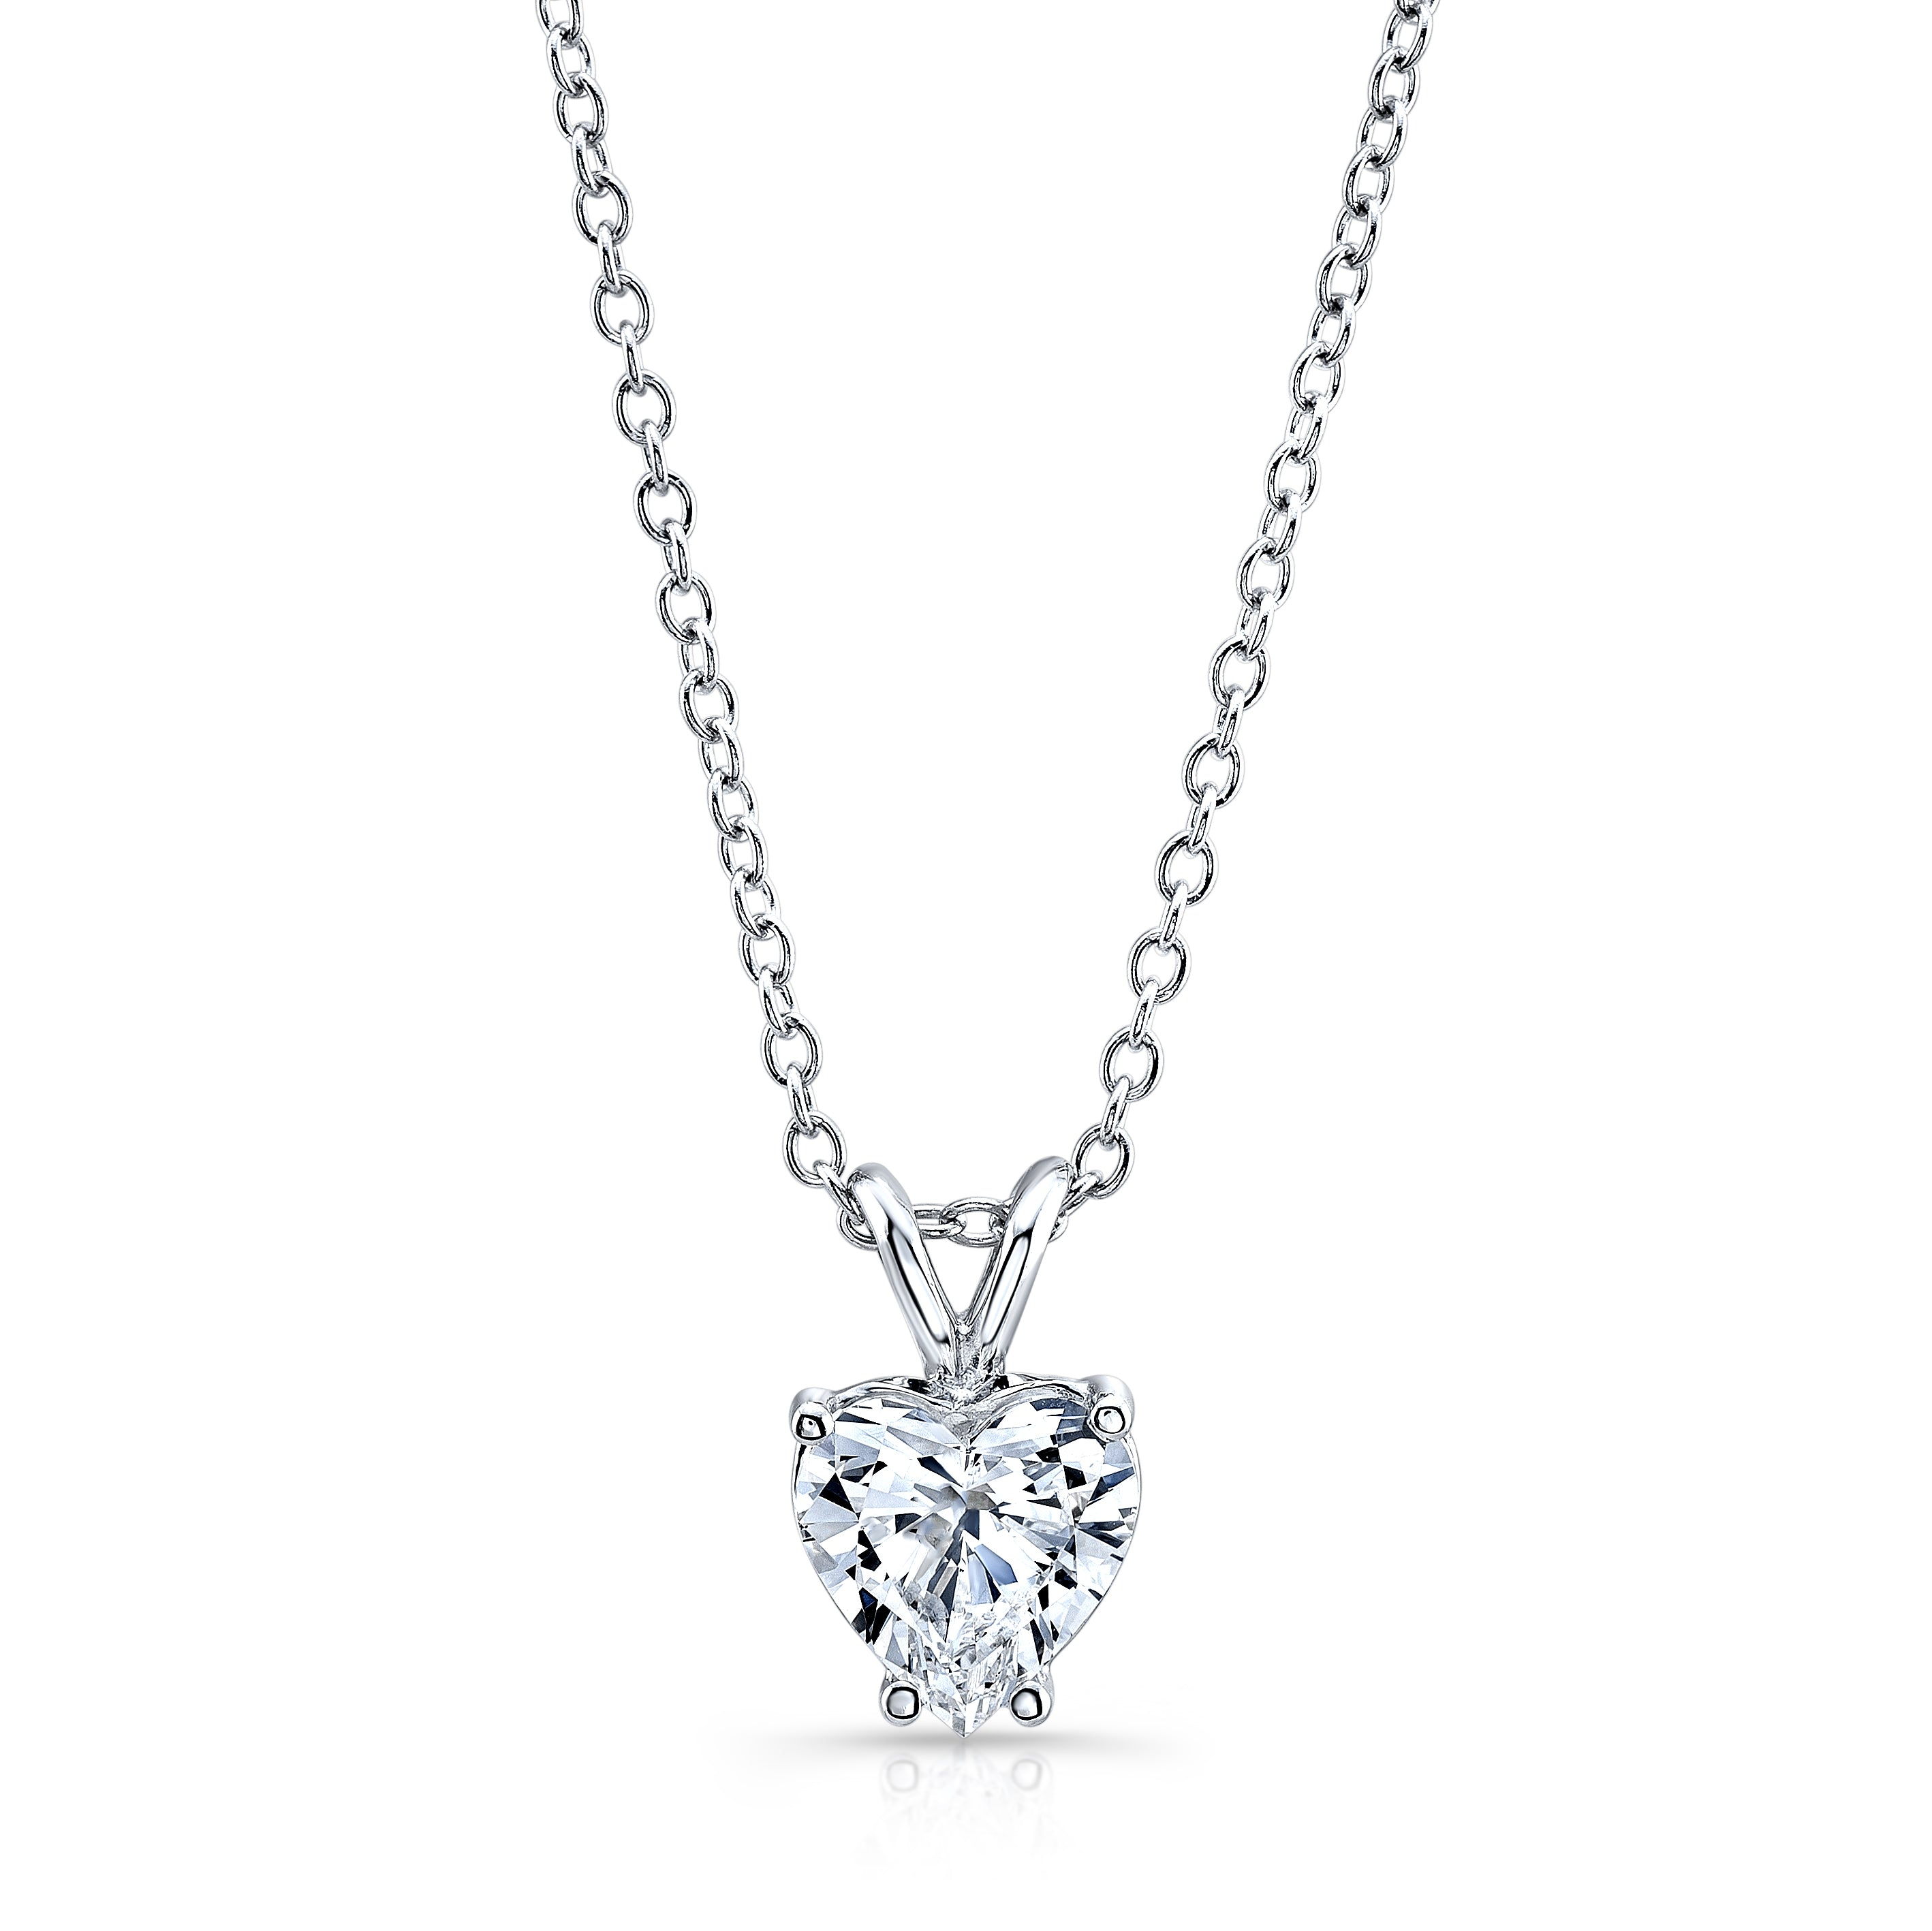 201 solitaire diamond pendant f vs2 gia beverly hills mizrahi 201 solitaire diamond pendant f vs2 gia mizrahi diamonds aloadofball